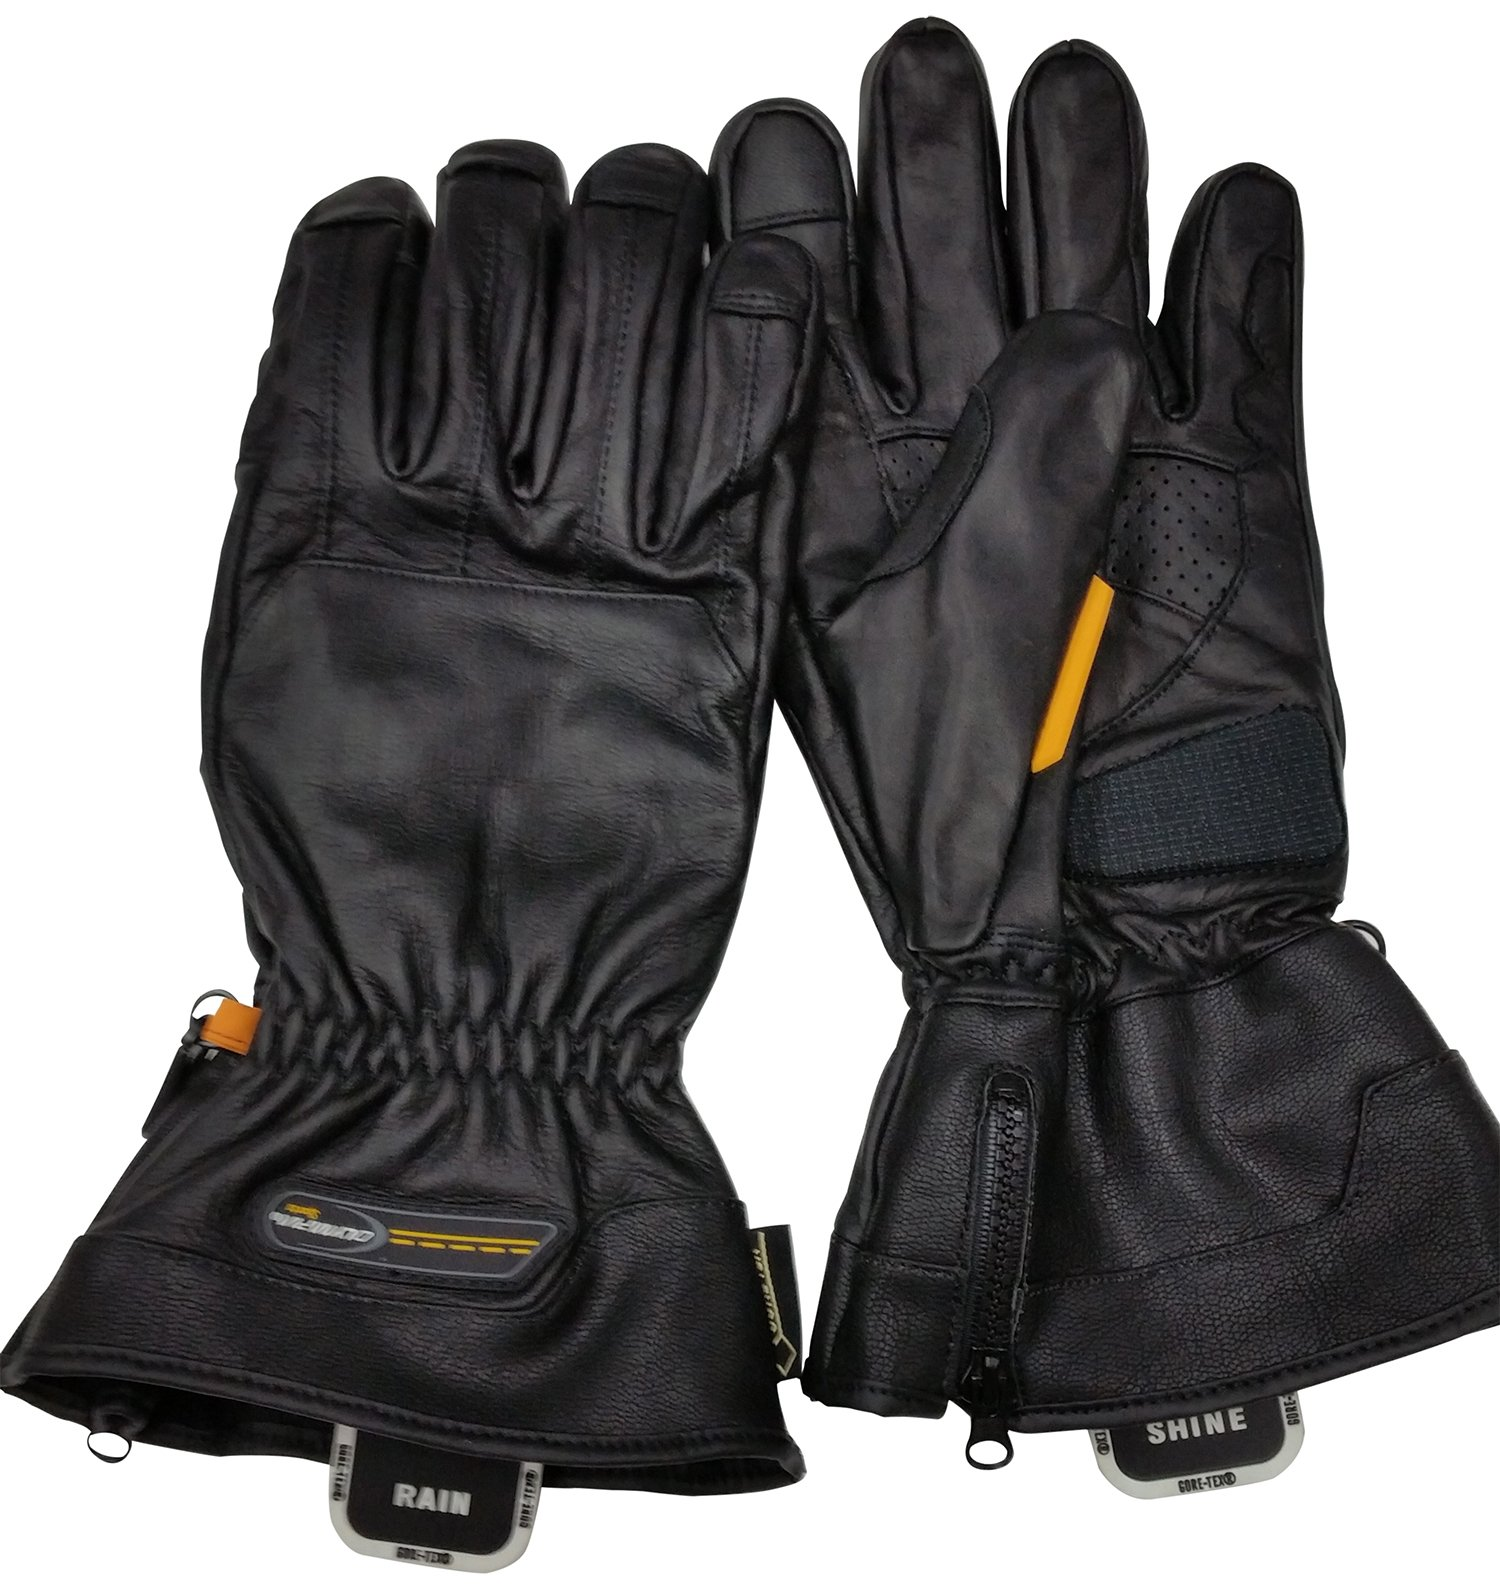 Olympia Sports Men's Gore-Tex Rain or Shine Gloves (Black, XX-Large) by Olympia Sports